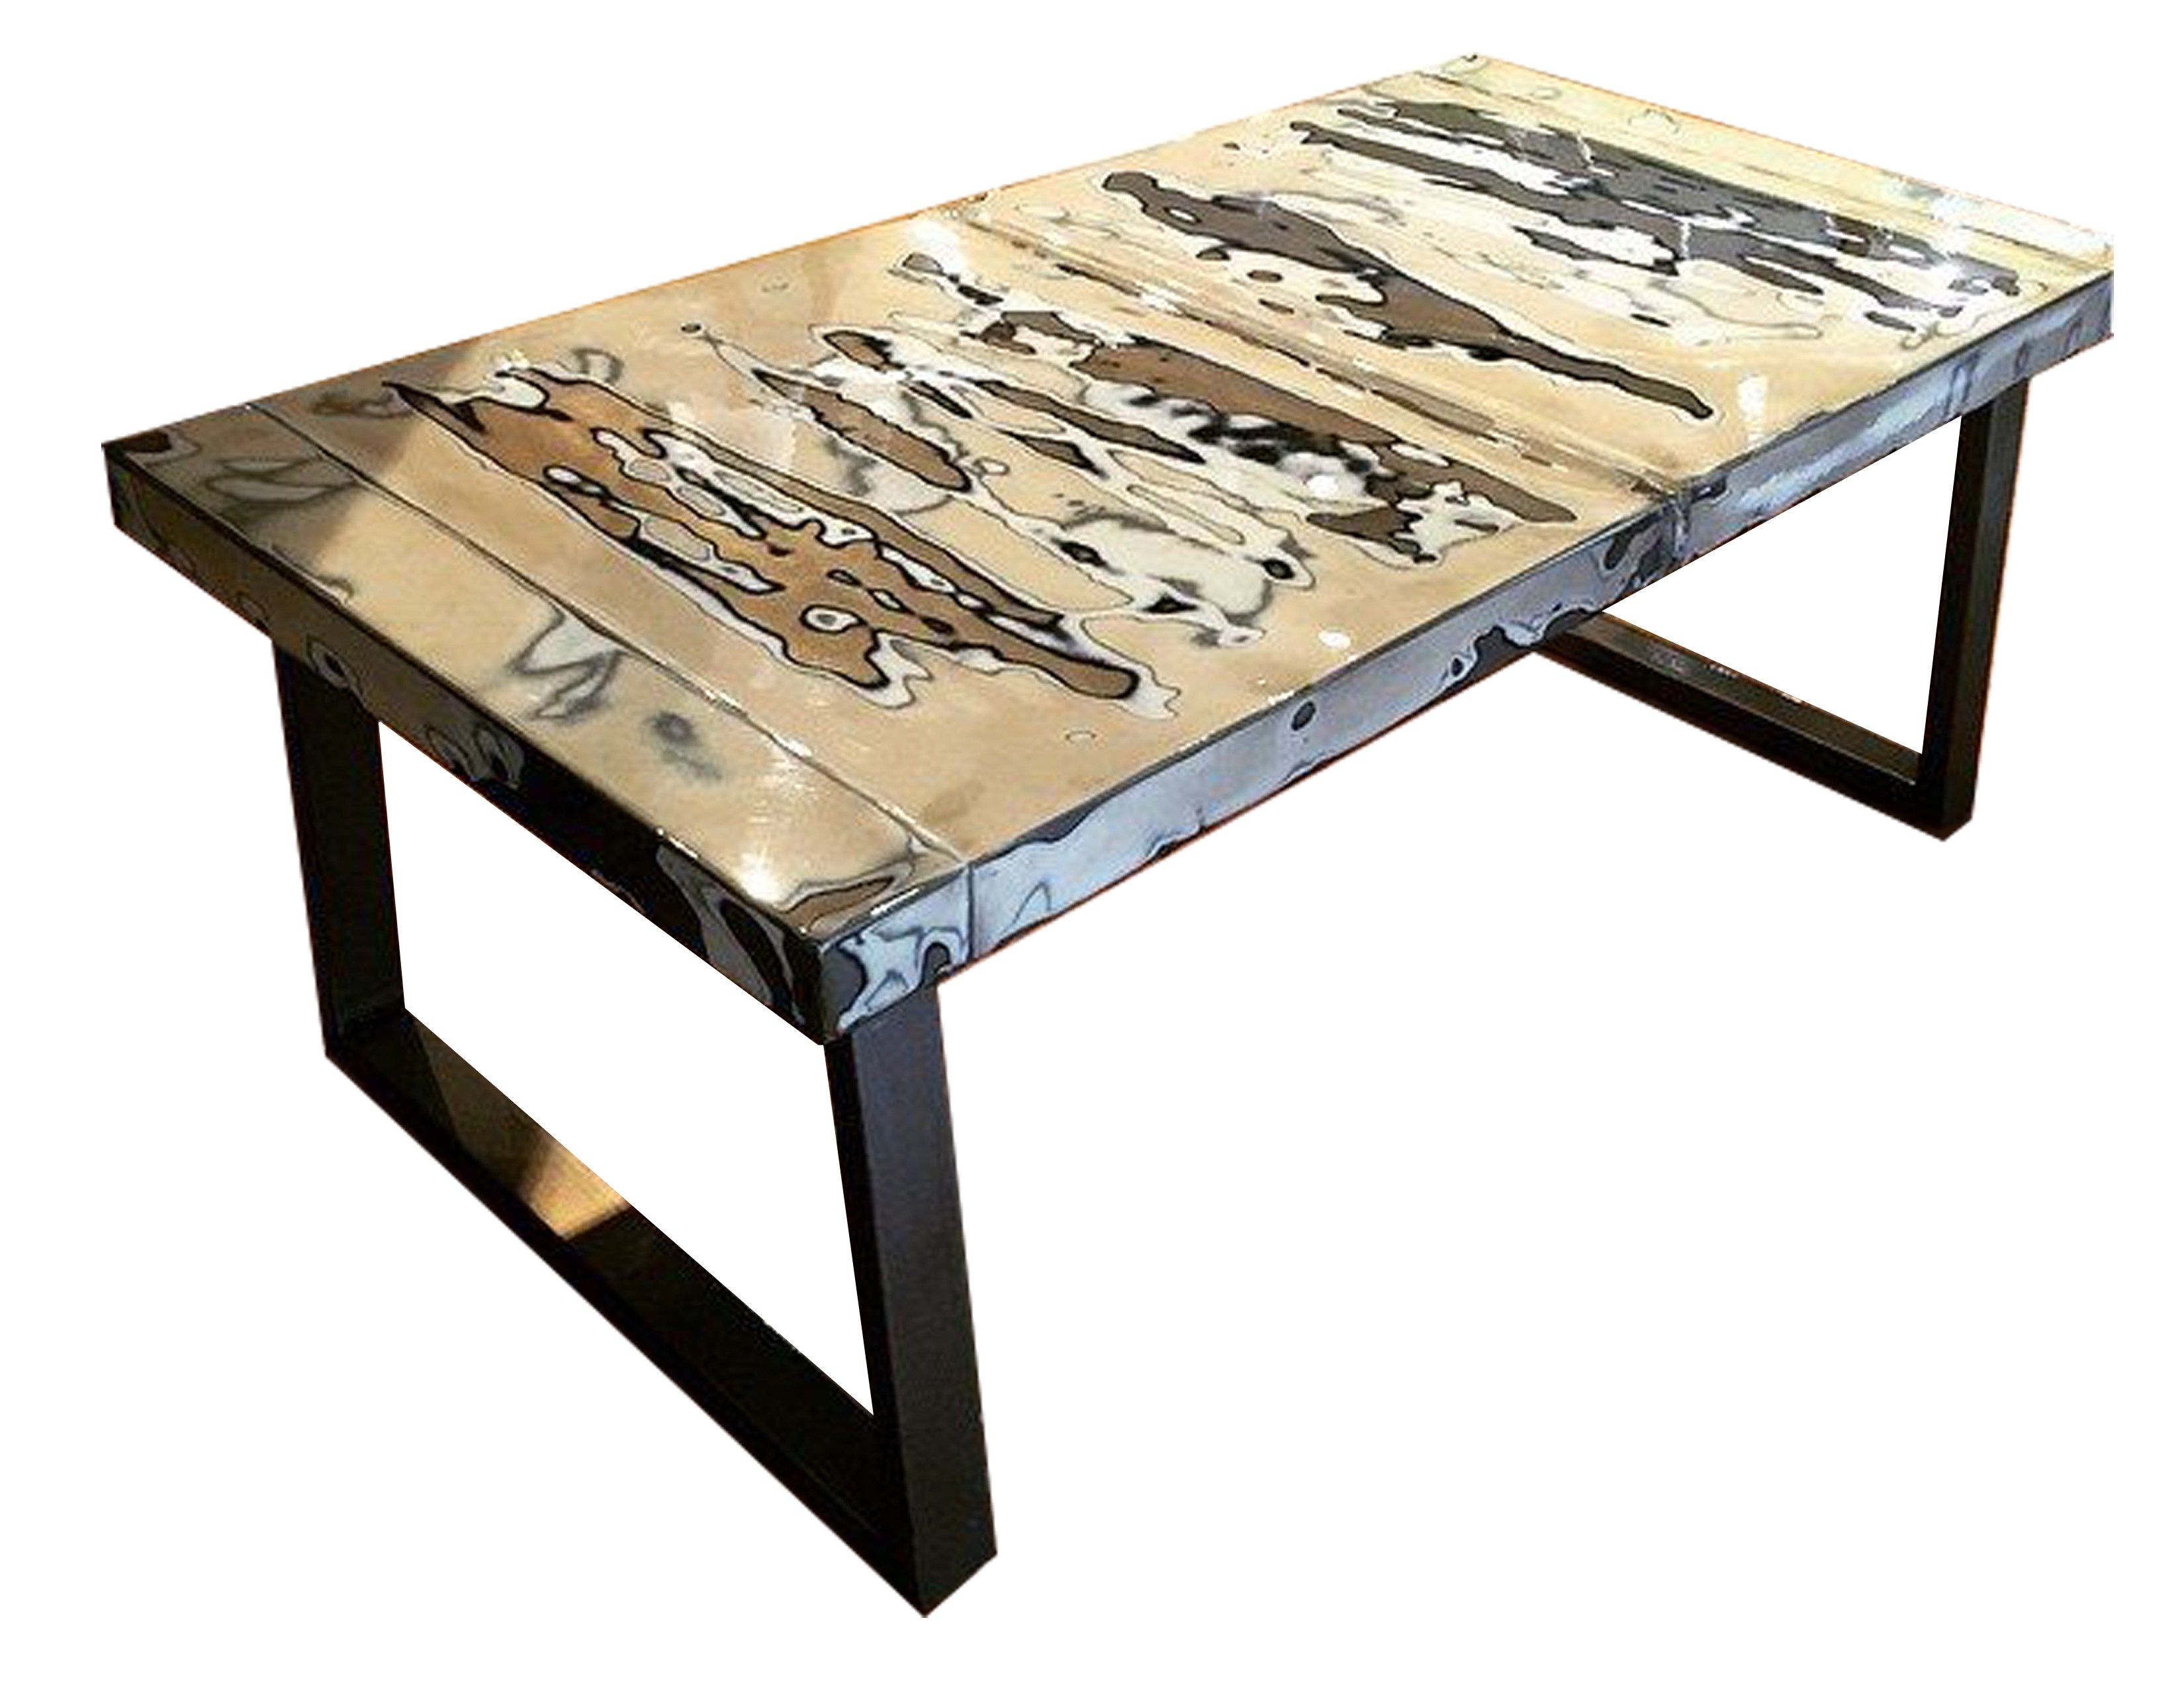 CAR HOOD COFFEE TABLES These unique coffee table are made with